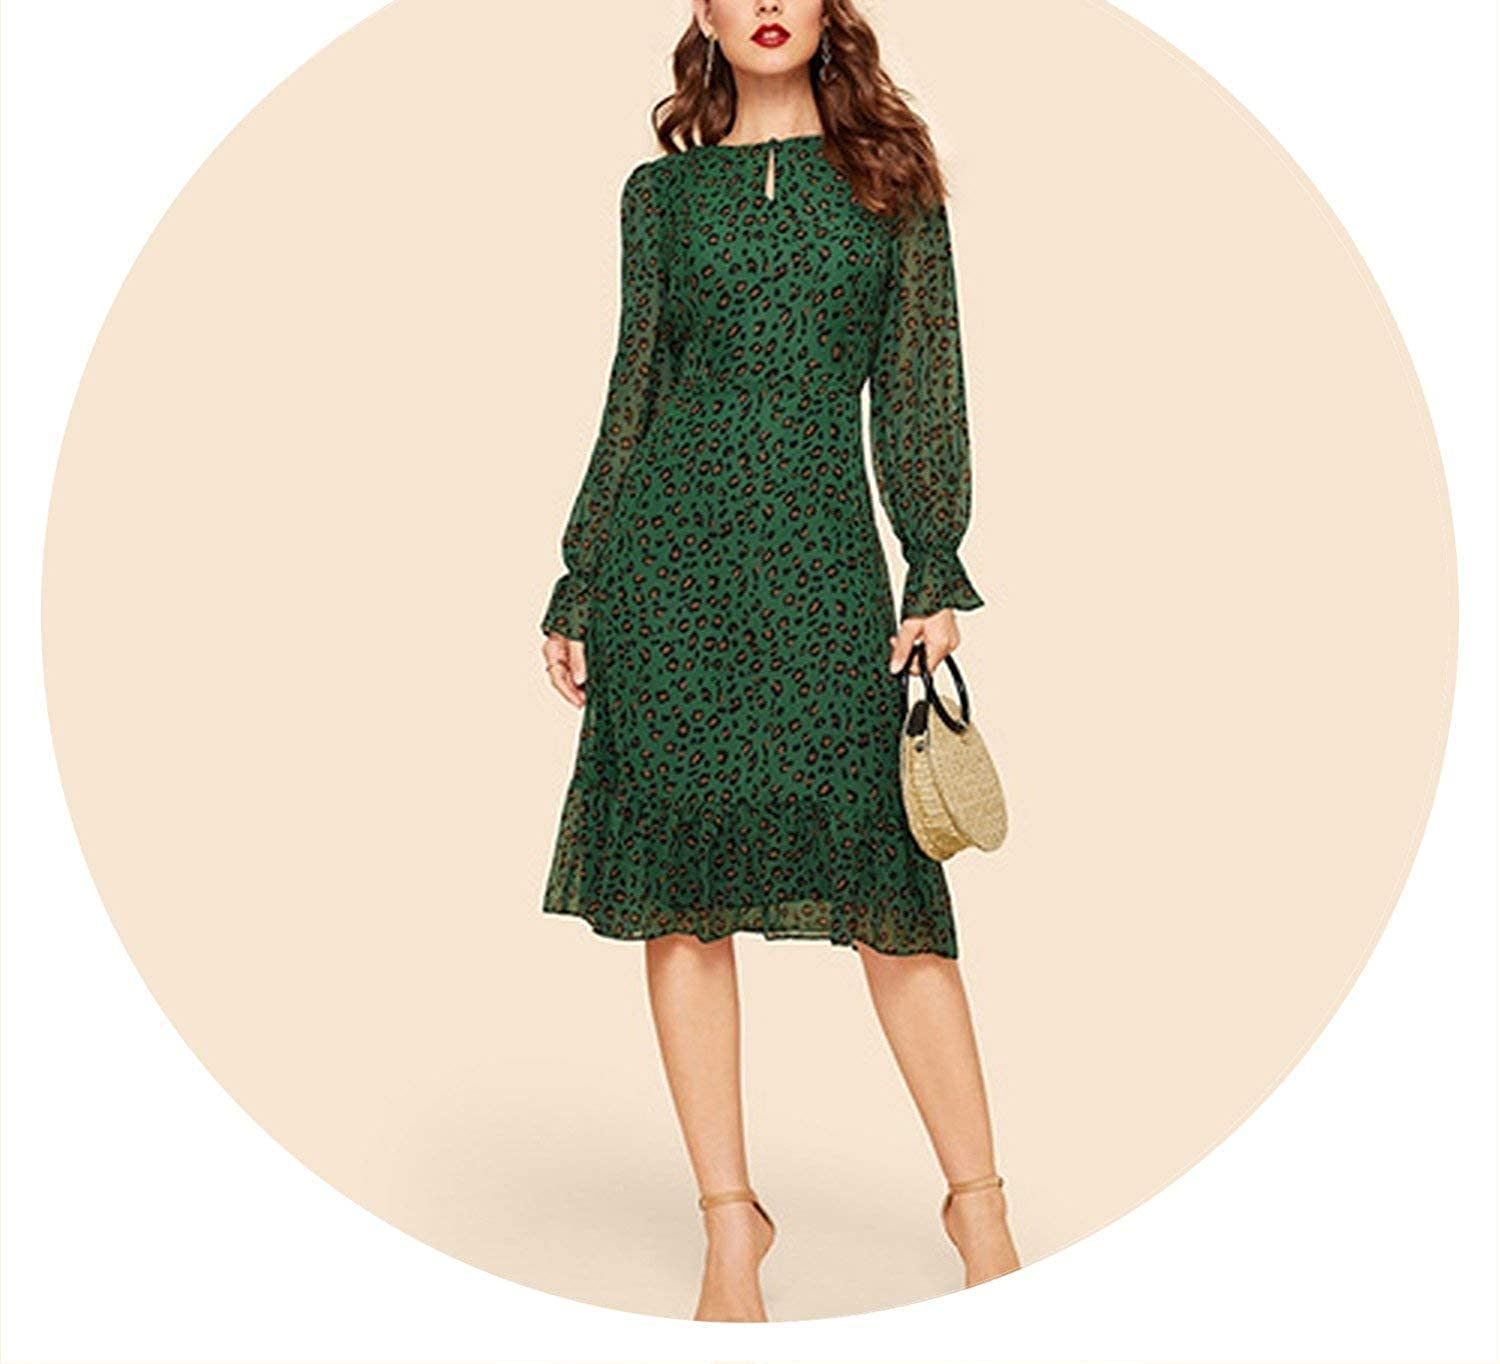 Multi Brave pinkmary Keyhole Neck Flounce Sleeve Leopard Dress Vintage High Waist Fit and Flare Spring Elegant Women Dresses